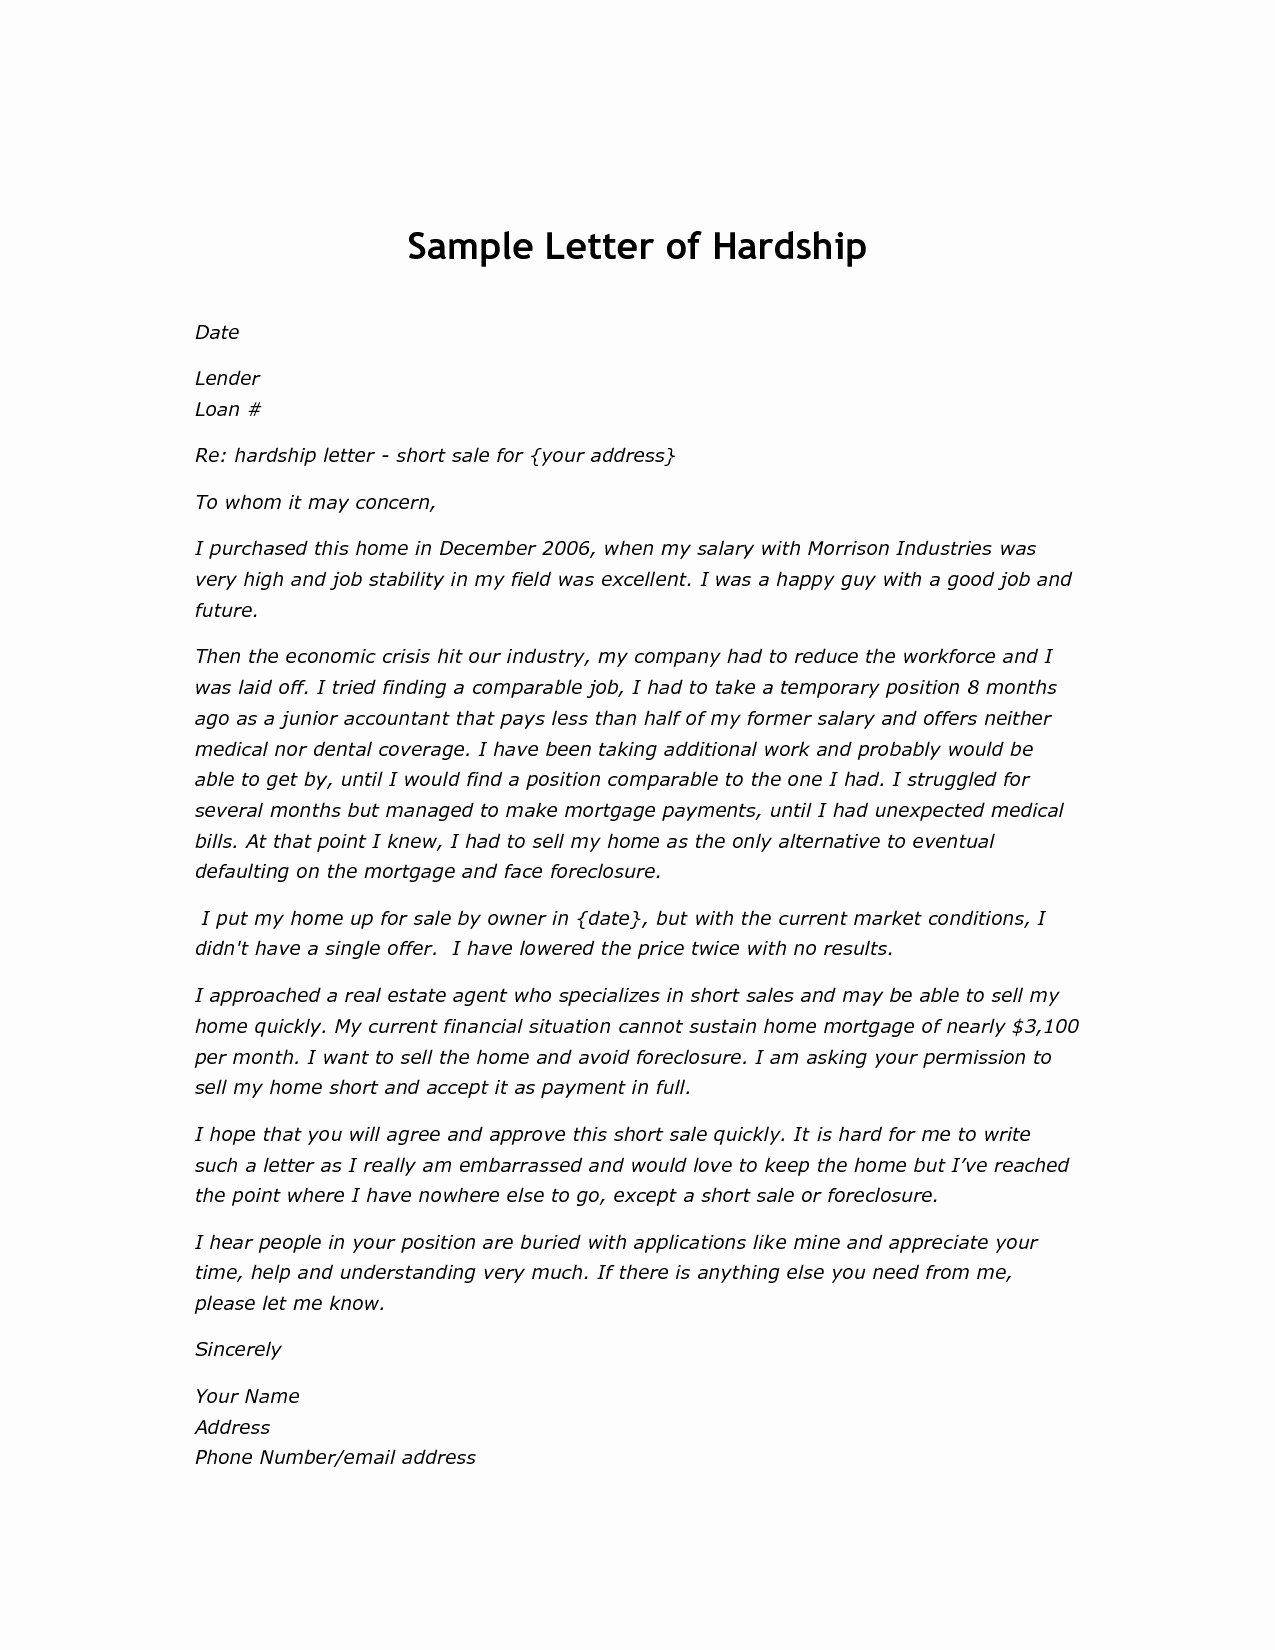 Hardship Letter Template for Loan Modification Request Luxury Mortgage Payment Shock Letter Template Collection